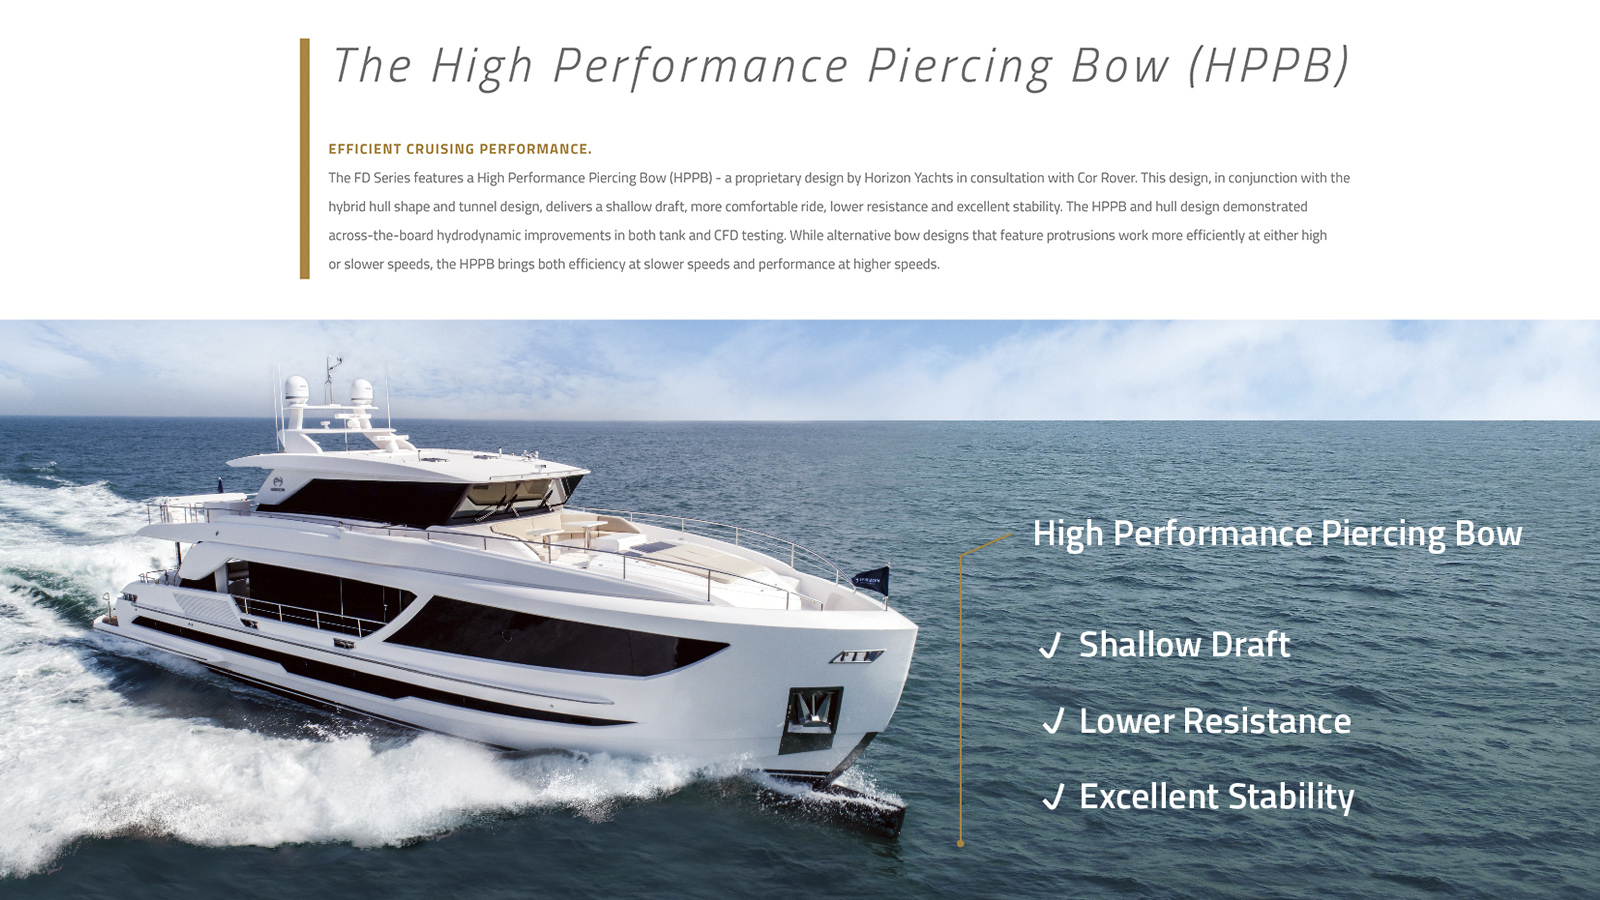 High Performance Piercing Bow